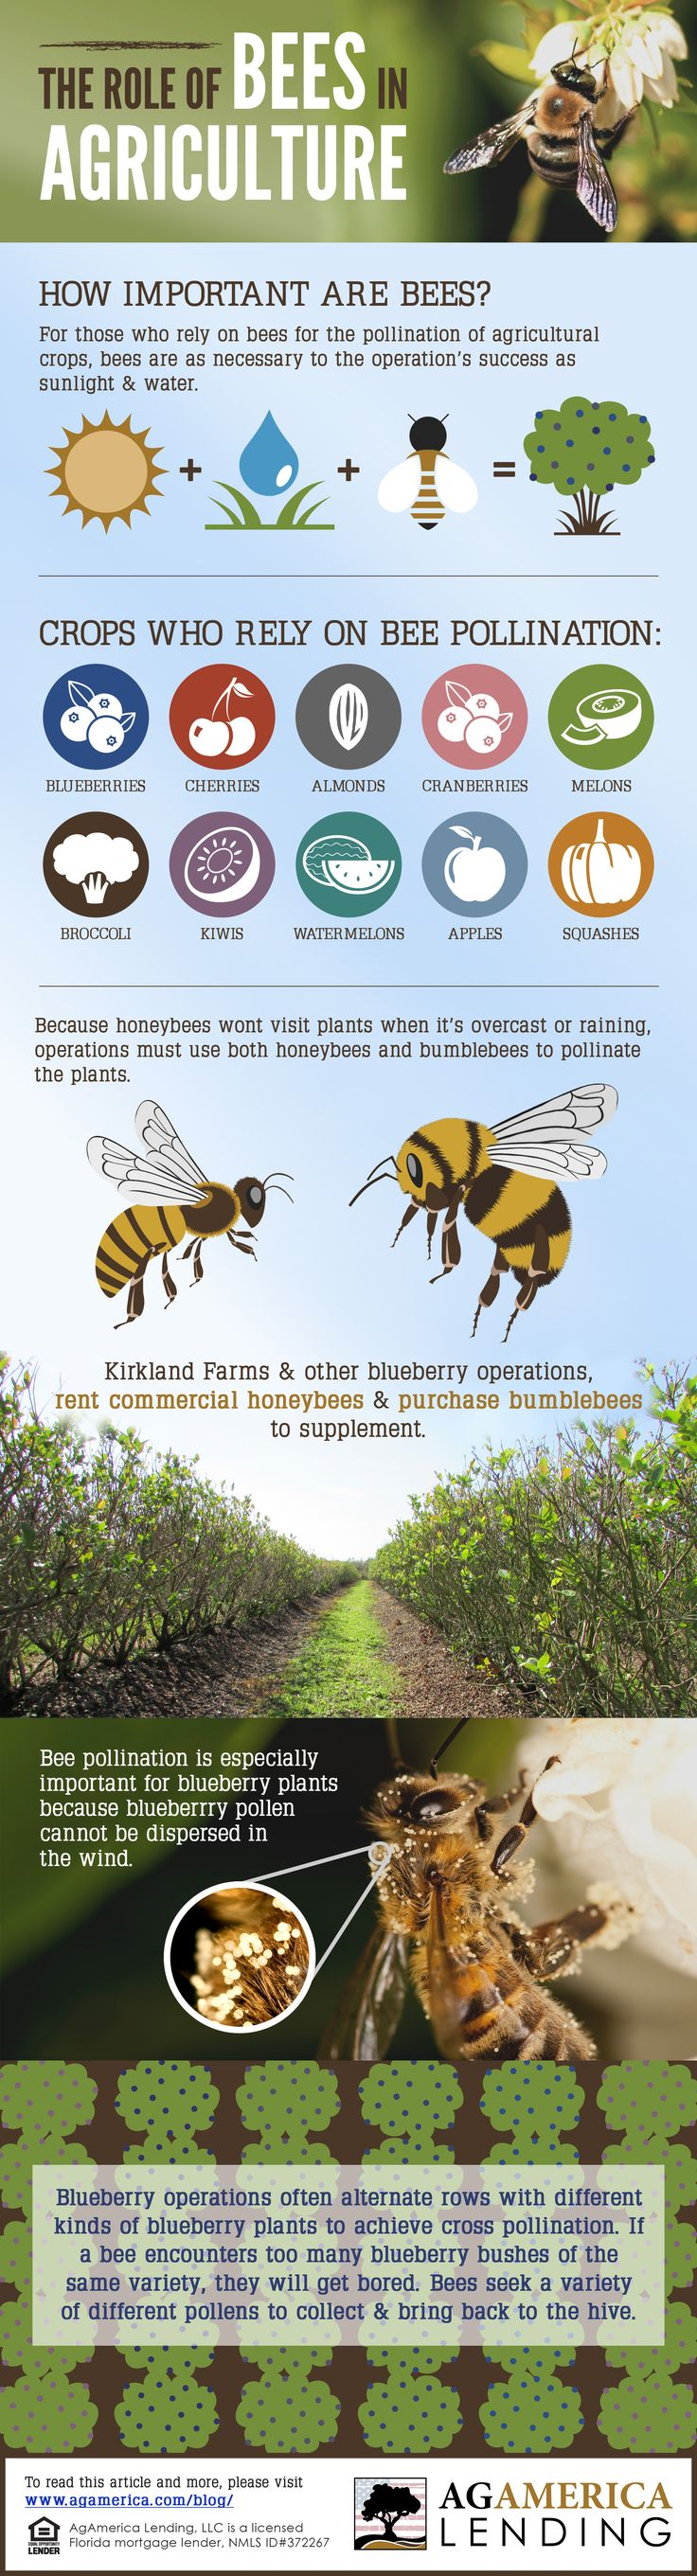 What's the Buzz: the Role of Bees in Agriculture.  Read the full article here: http://agamerica.com/whats-the-buzz-the-role-of-bees-in-agriculture/